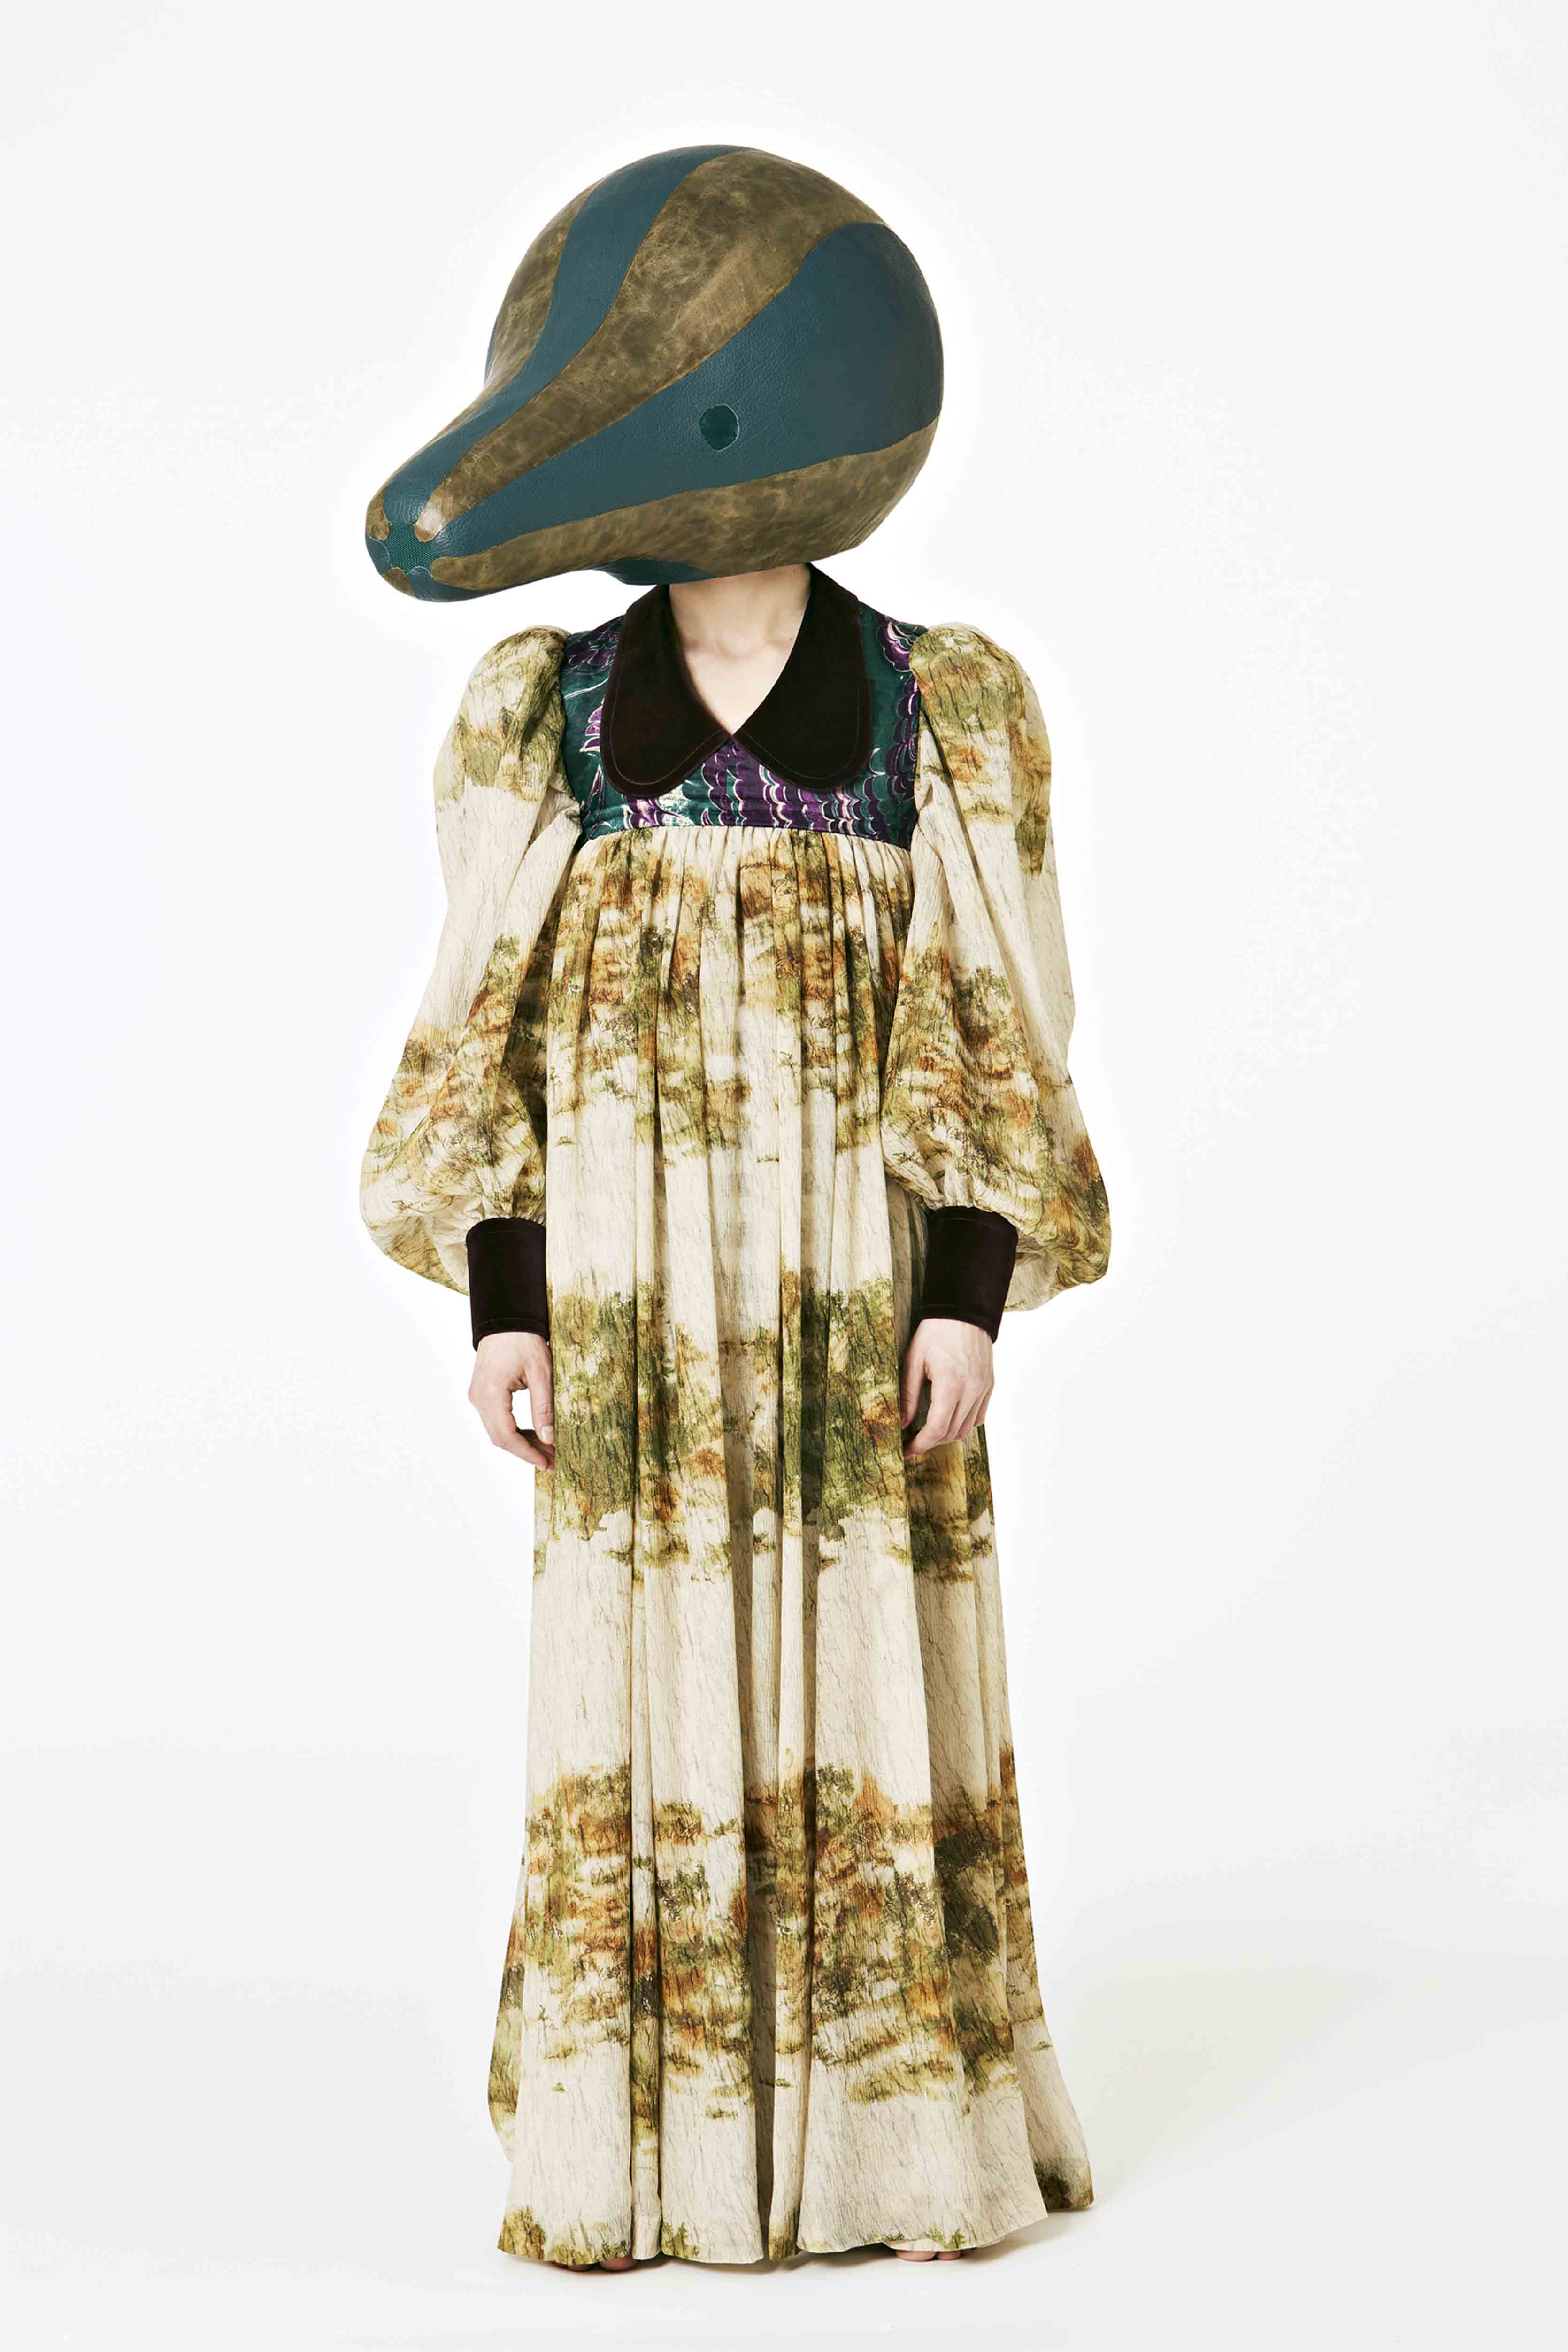 Loewe -Fiber glass head covered in green buffalo leather and vintage effect calf leather. Multicolor printed silk crepon nightgown. Green velvet cuff/collar and purple velvet marble print top panel.